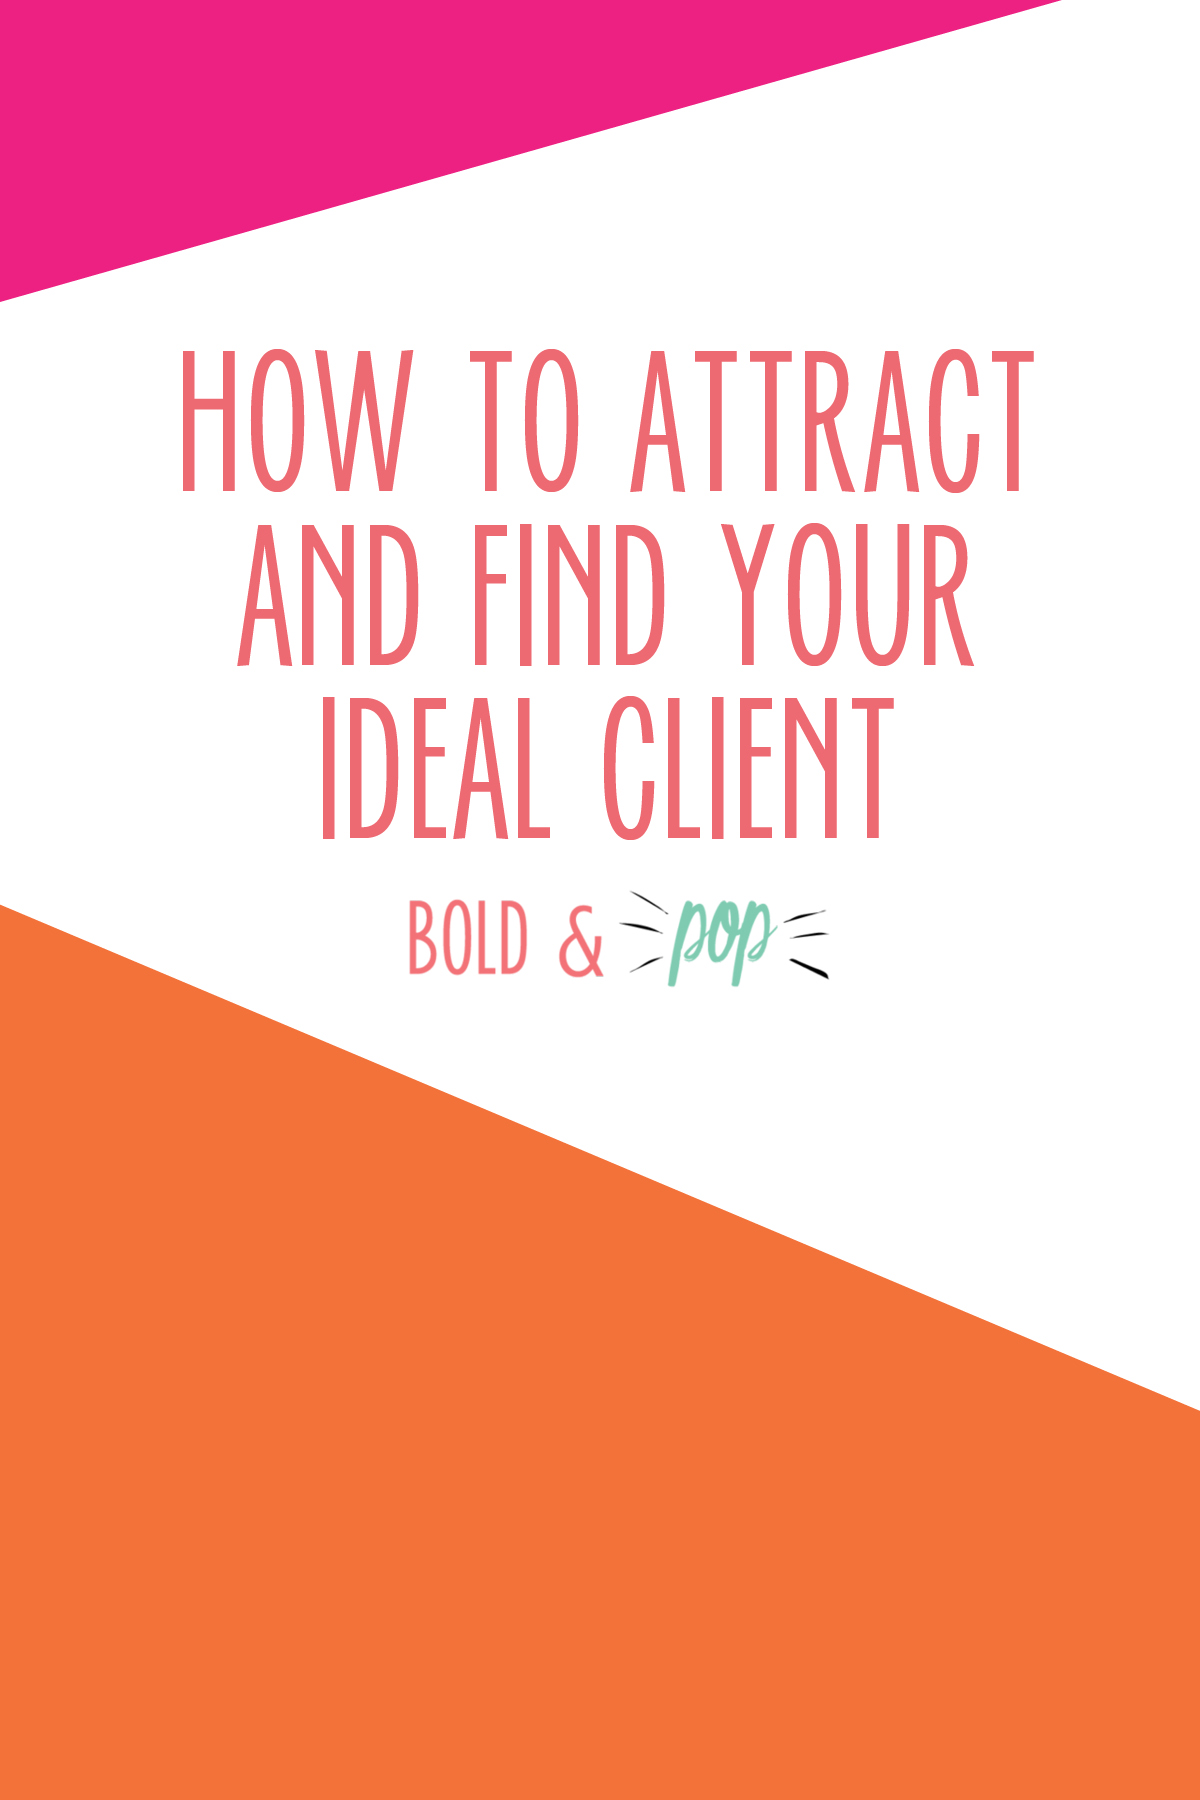 Bold & Pop : How to Attract and Find Your Ideal Client